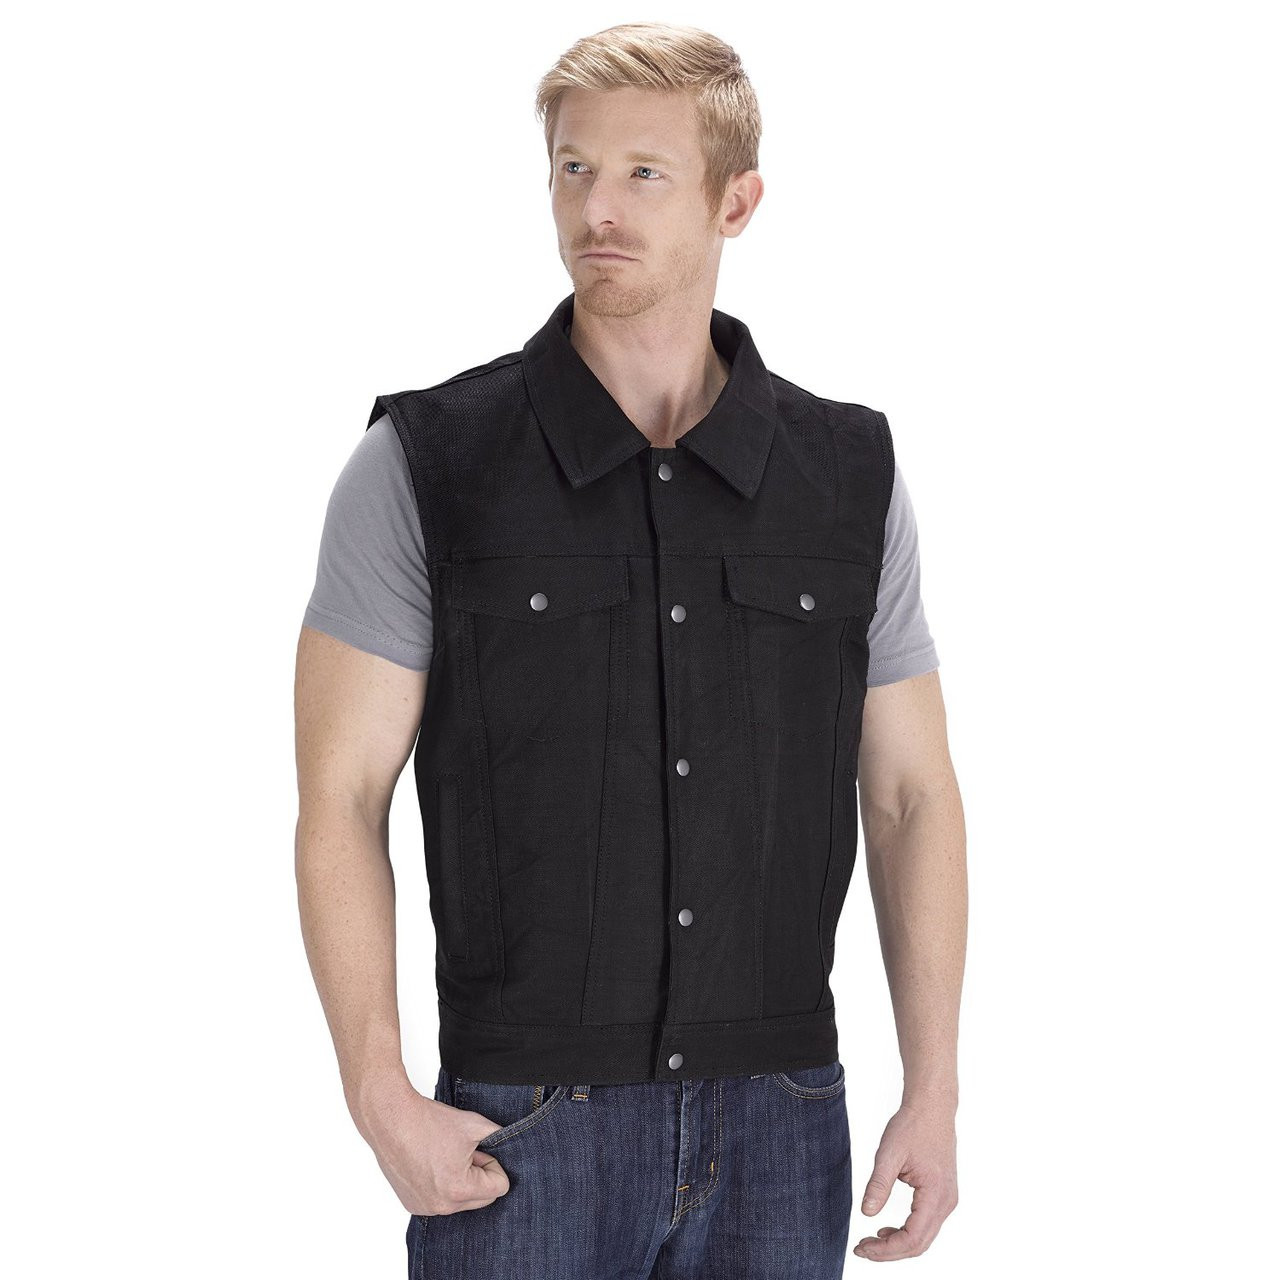 Image result for Motor cycle house black vest